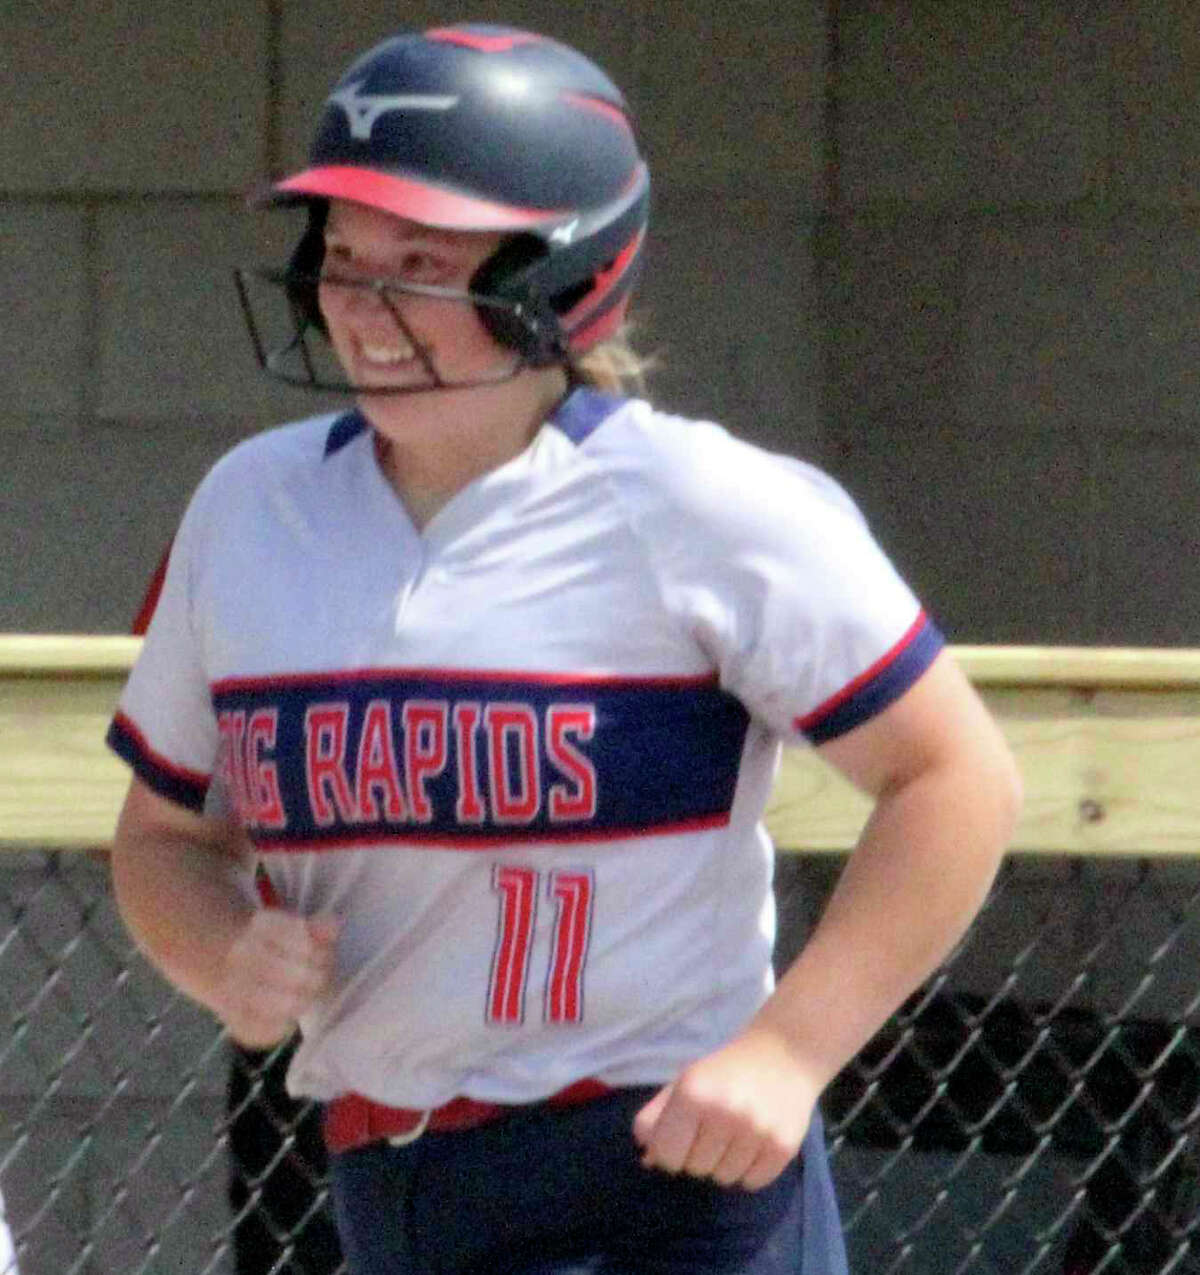 Jaylynn Gray flashed her home run smile for Big Rapids while rounding the bases in the regional semifinal at Cadillac.